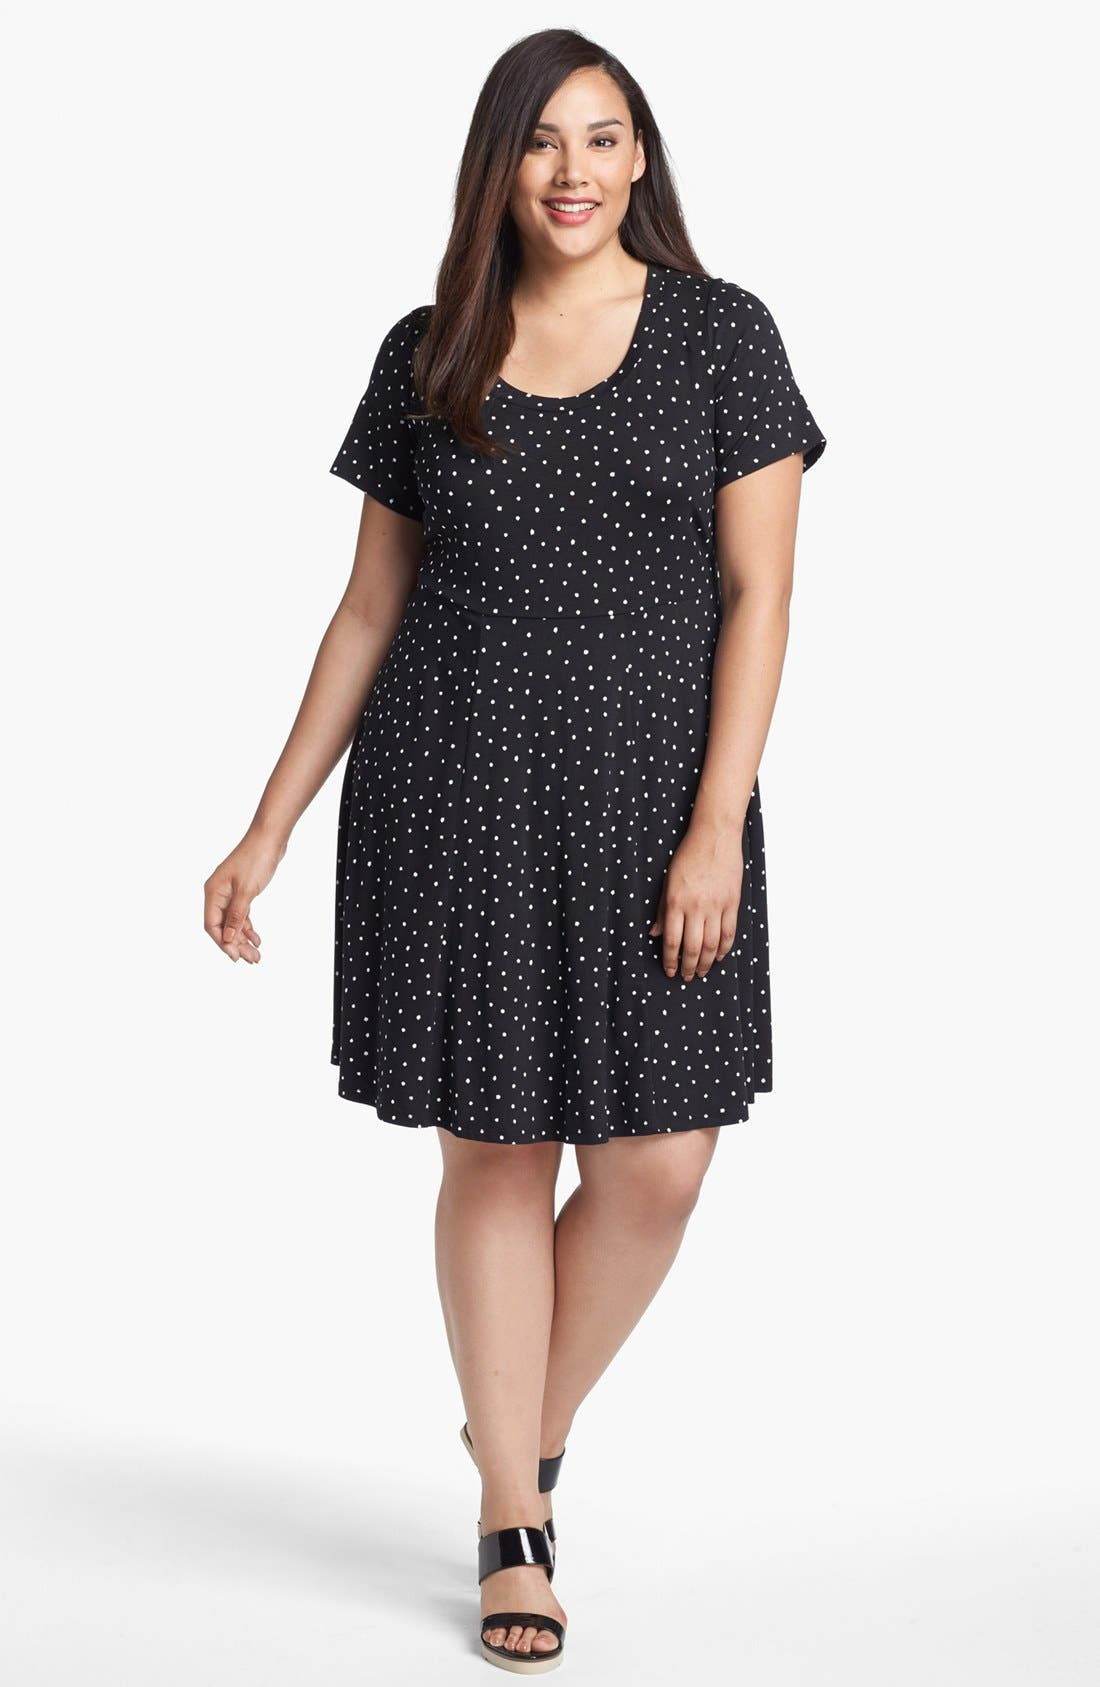 Alternate Image 1 Selected - Evans Polka Dot Skater Dress (Plus Size)